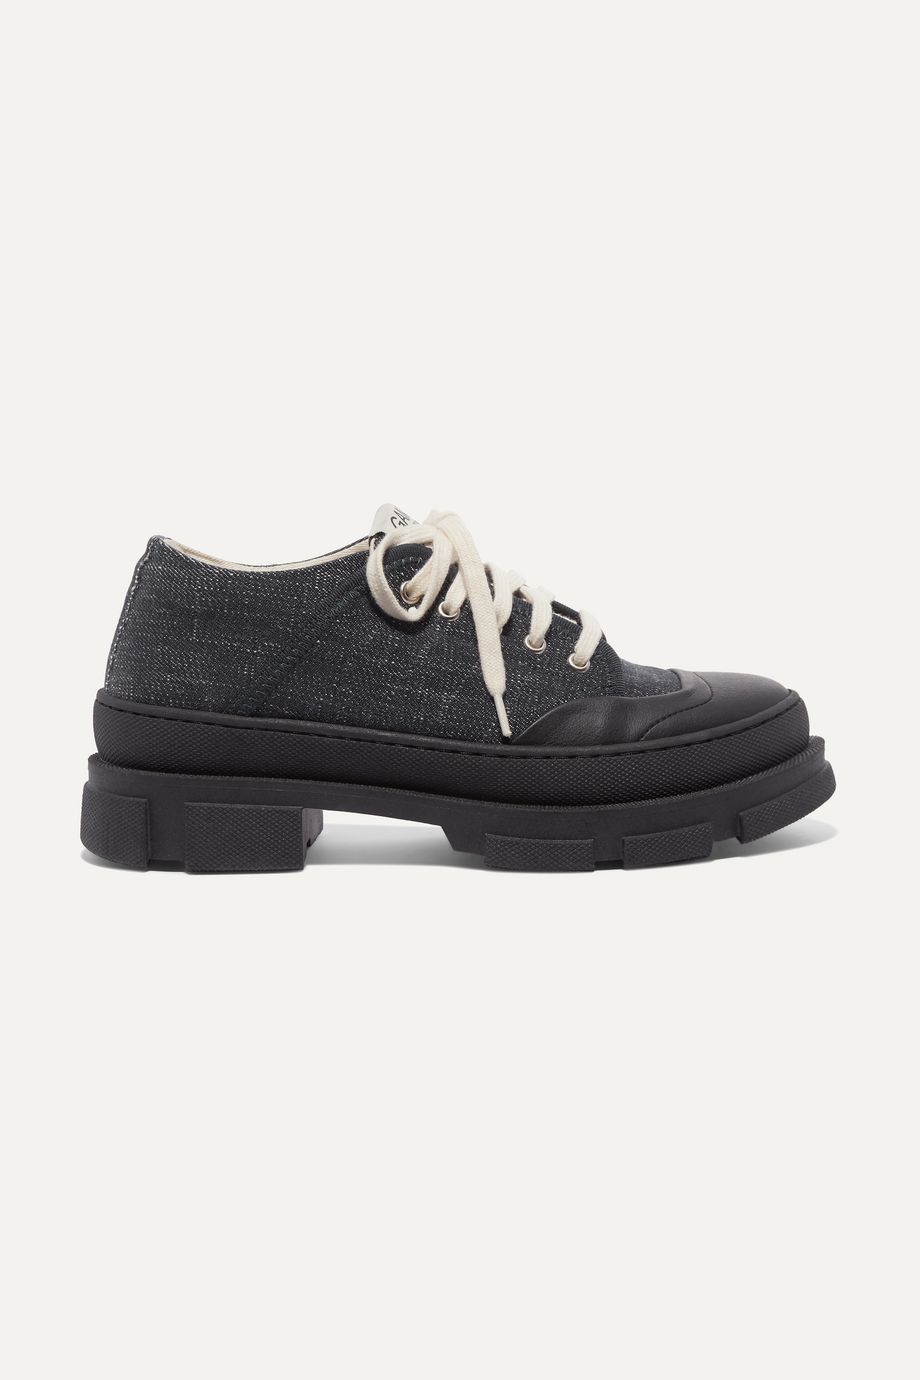 GANNI Hybrid leather-trimmed denim platform sneakers